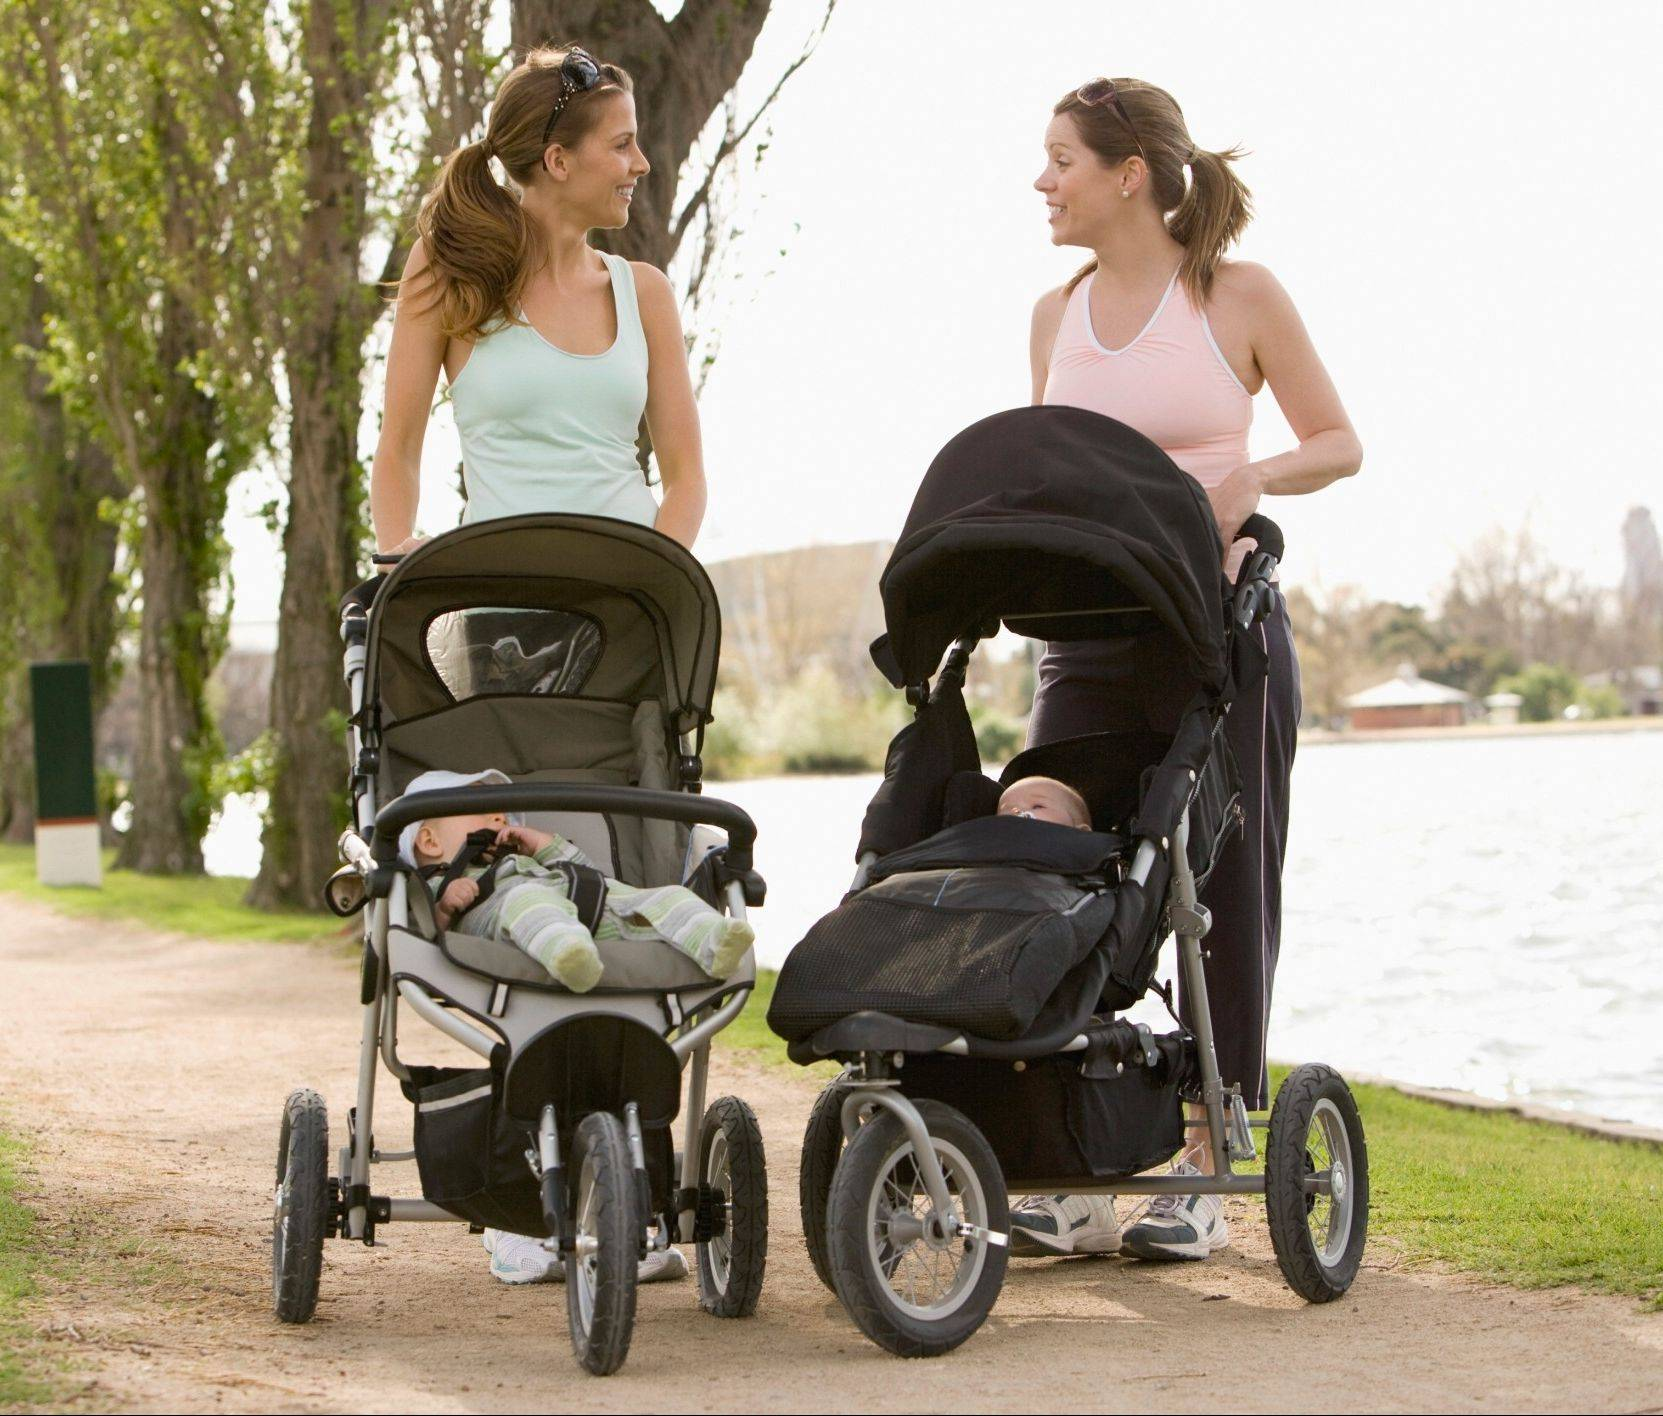 Some workout classes allow moms the ease of keeping their baby with them during exercise routines, such as walking or running with strollers.